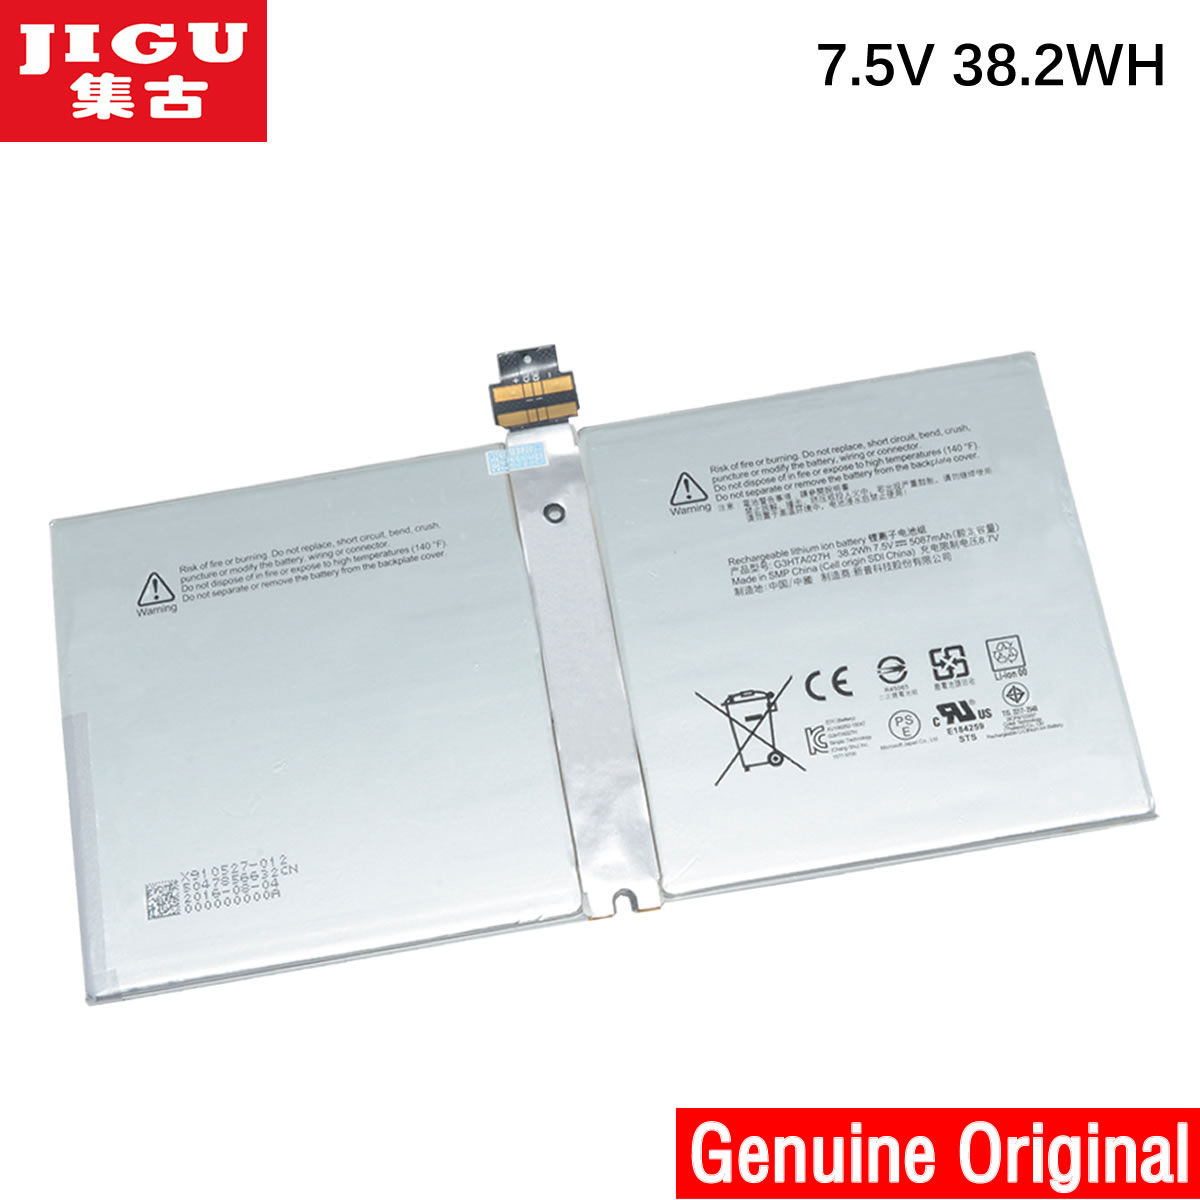 JIGU 7.5V 38.2wh 5087mAh Original G3HTA027H Laptop Battery For Microsoft Surface Pro 4 12.3